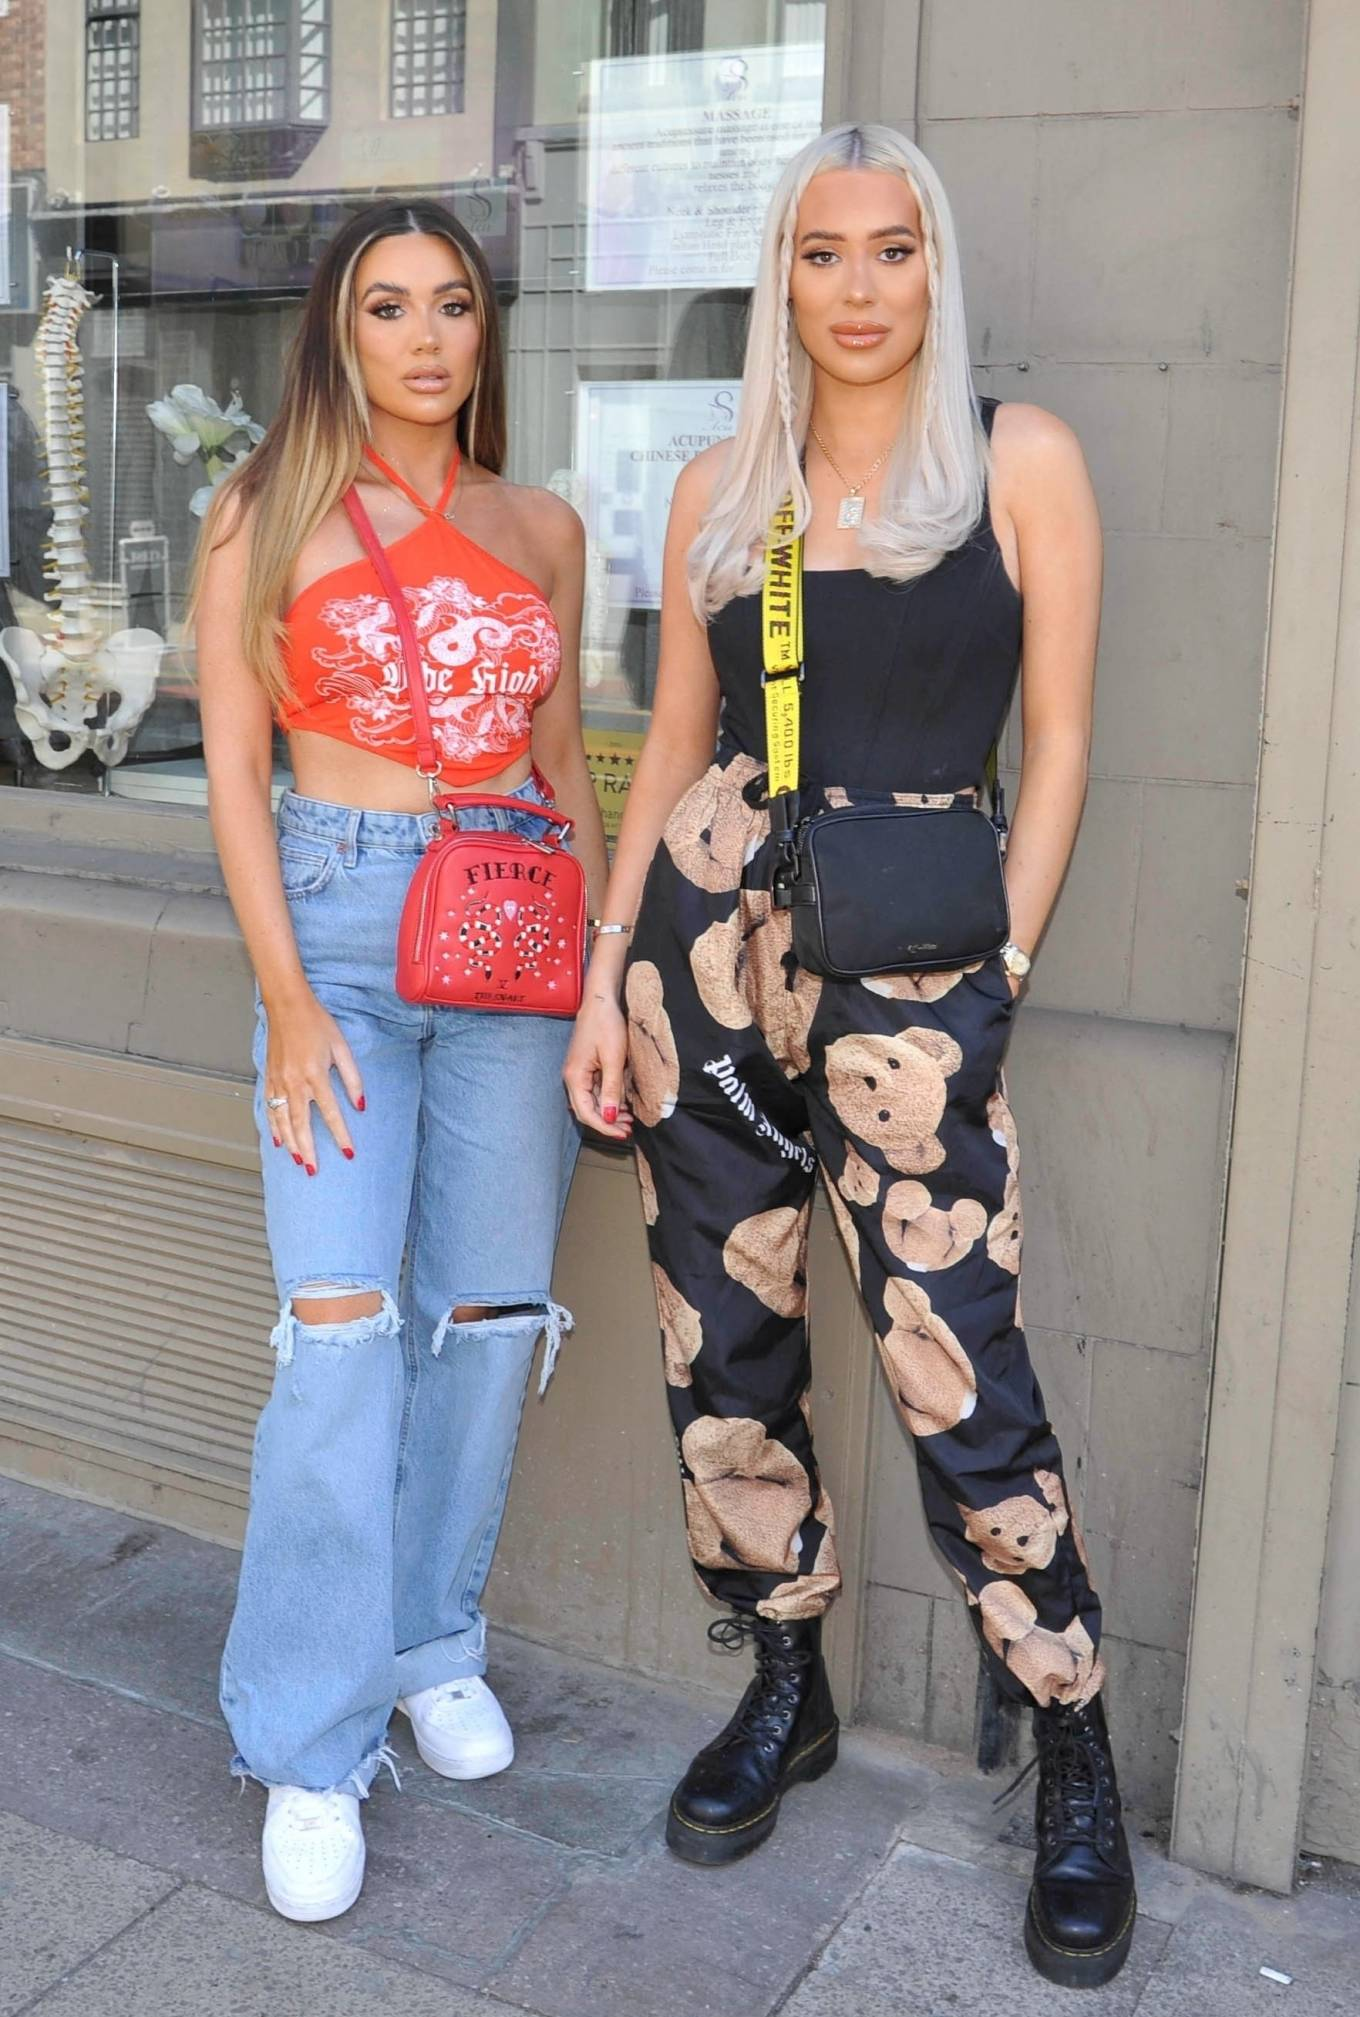 Demi Sims 2021 : Demi Sims – With Frankie out at Boujee bar an restaraunt in Manchester-06